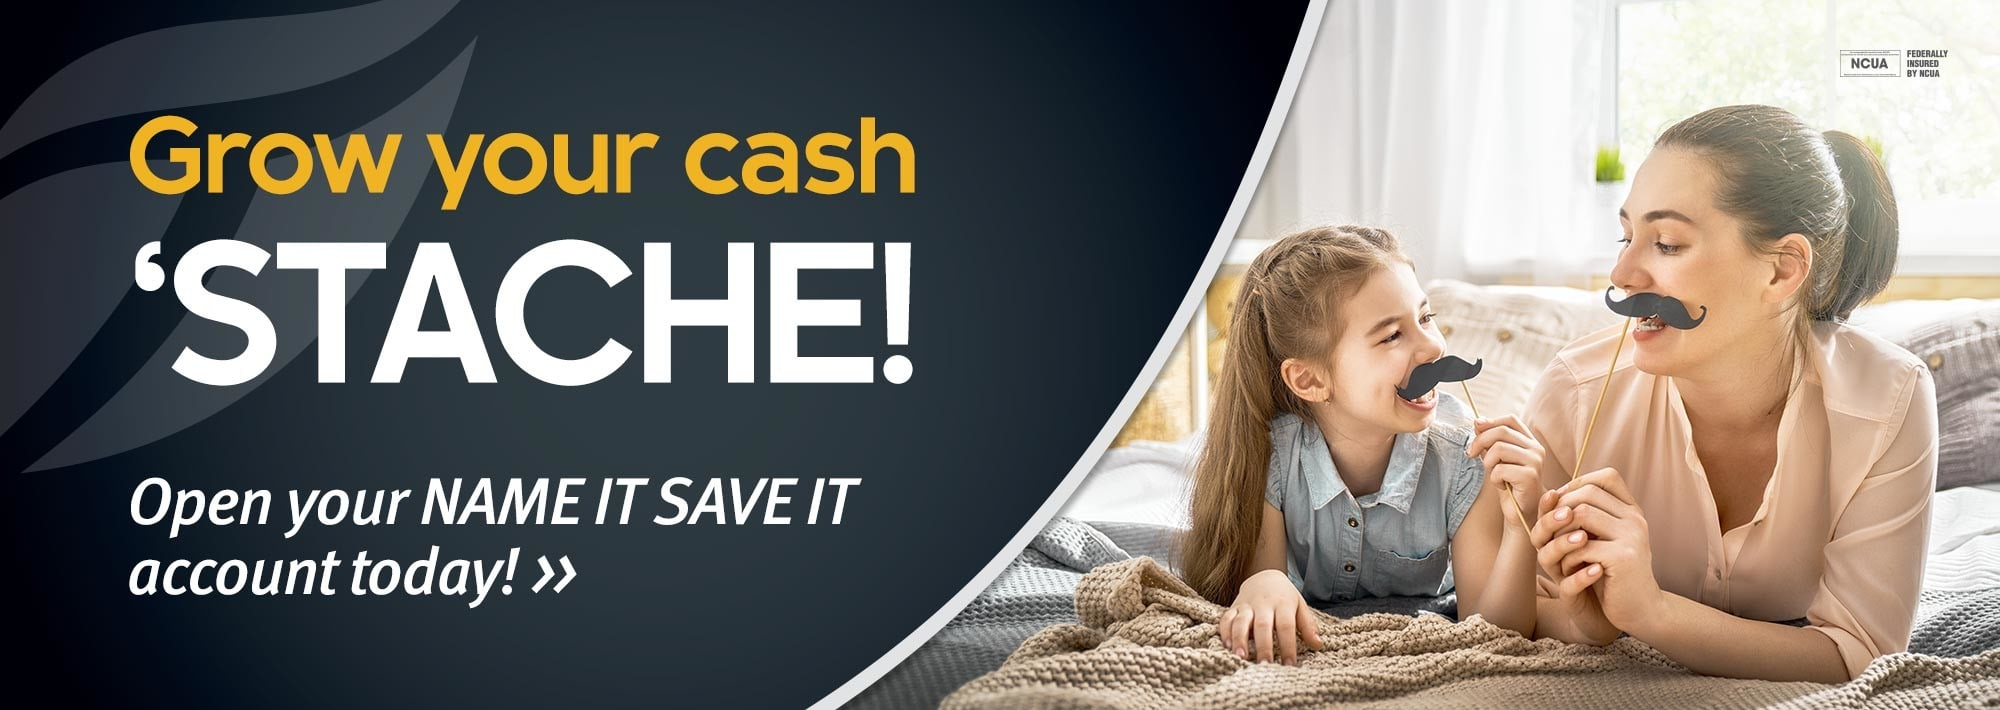 Grow Your Cash 'Stache! Open your Name It Save It account today!